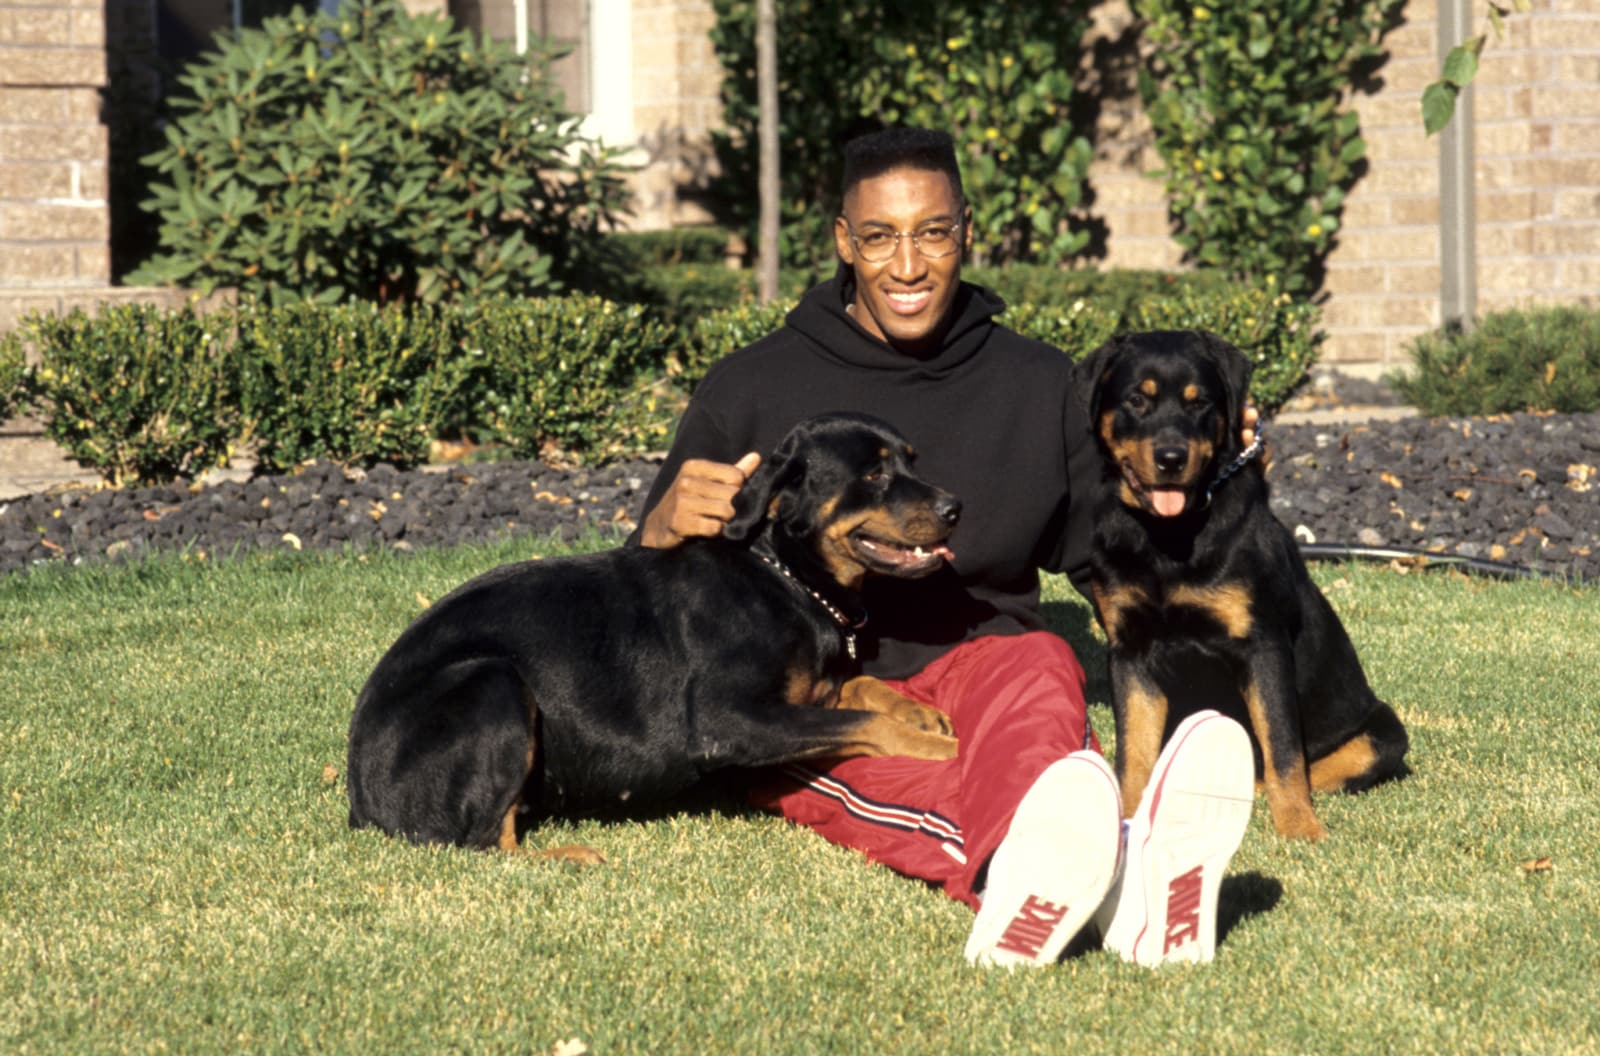 Pippen sitting with two dogs